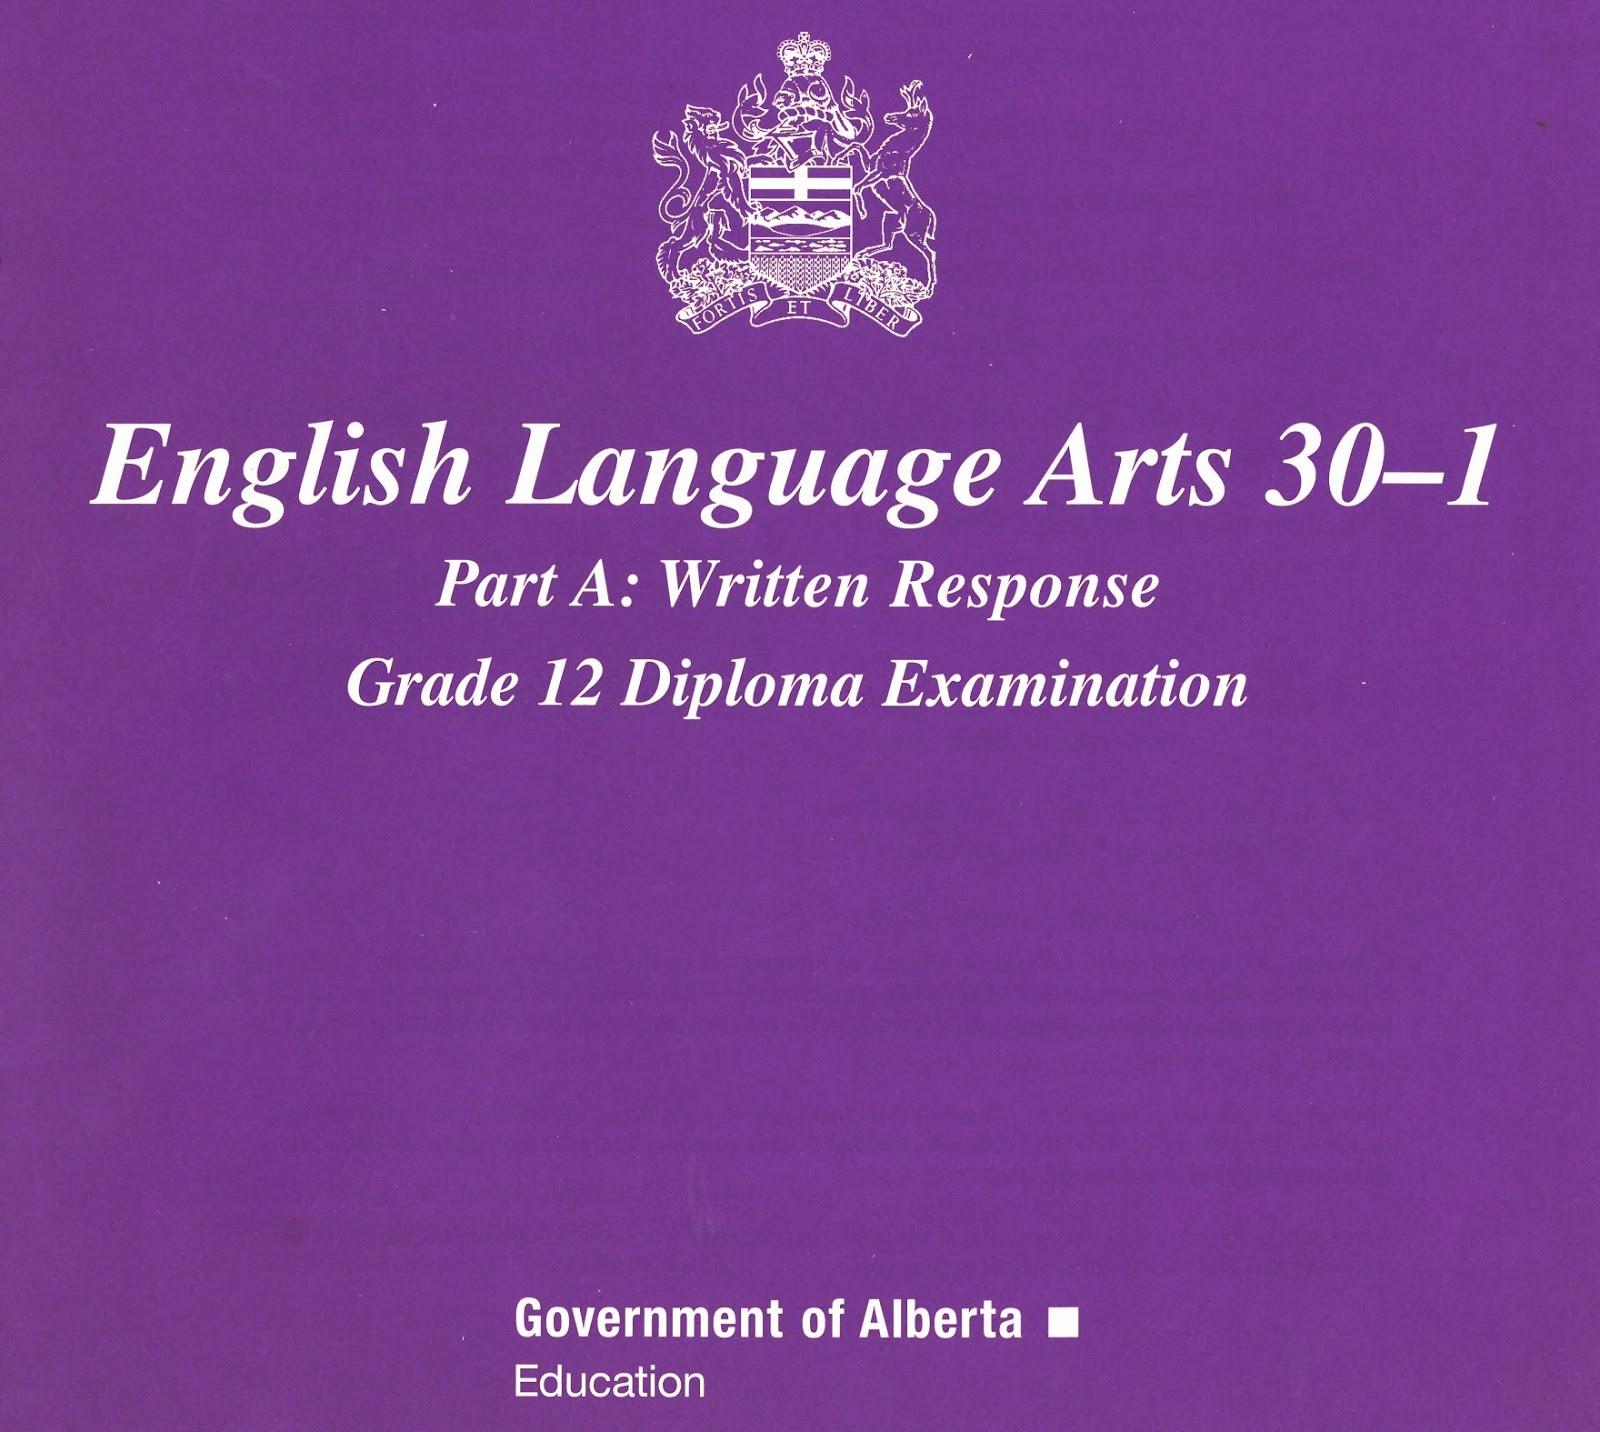 alberta english 30-1 diploma essays An outline of the contents of the english 30-1 portfolio  alberta education- diploma exam informaton a link which contains valuable information regarding diploma exams, including key dates, forms, student exemplars, etc  english 30-1 course outline english department assignment and assessment policy.